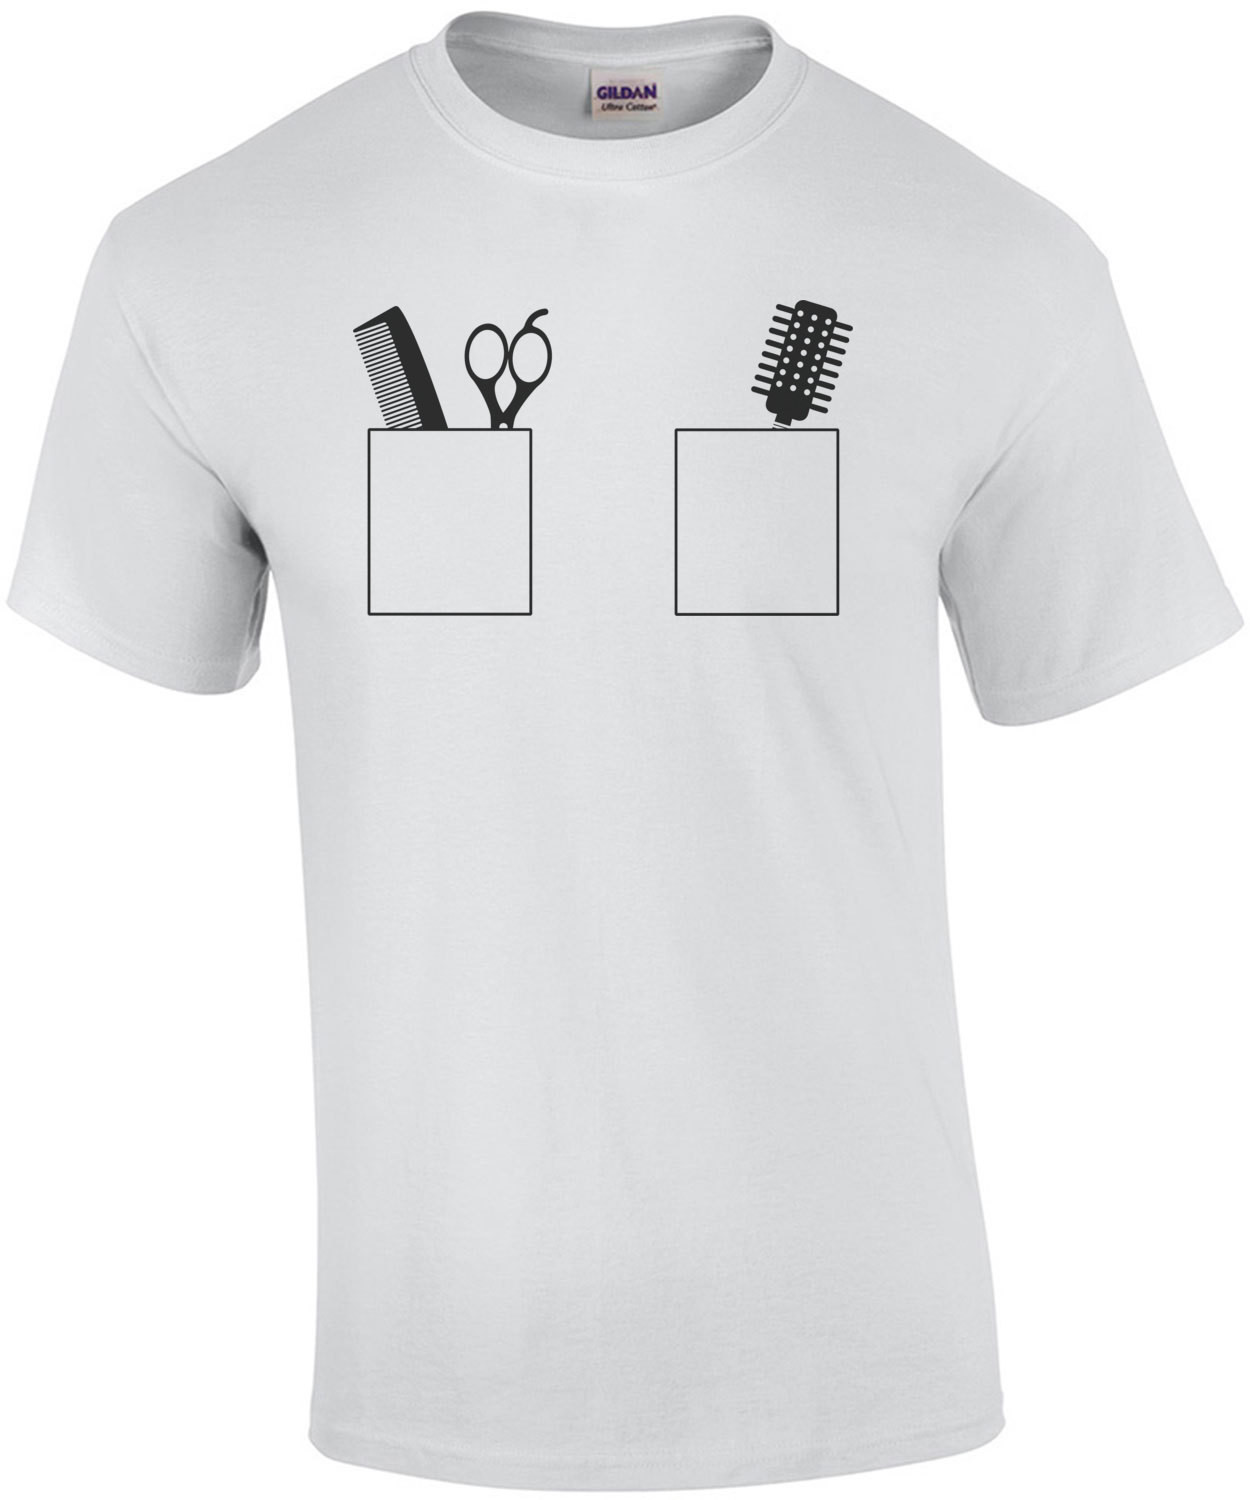 Comb, Scissors, Brush in pockets - Cute Hair Dresser - Hair Stylist T-Shirt